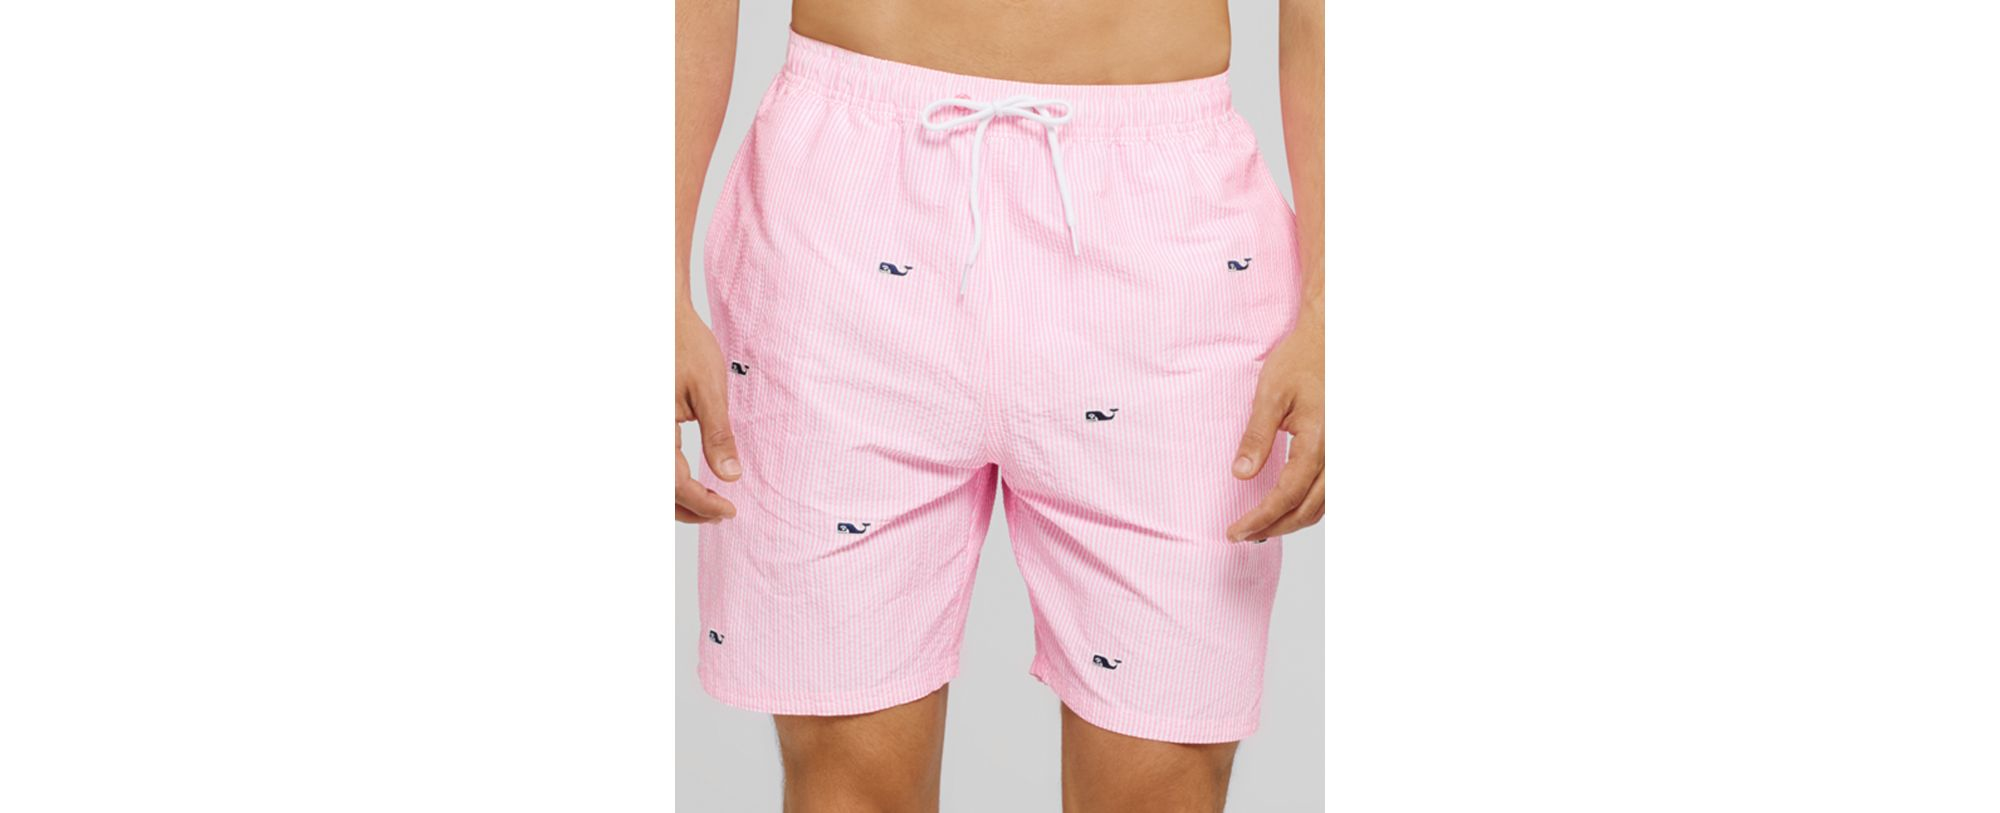 d3115f65d068a Lyst - Vineyard Vines Whale Embroidered Chappy Swim Trunks in Pink ...